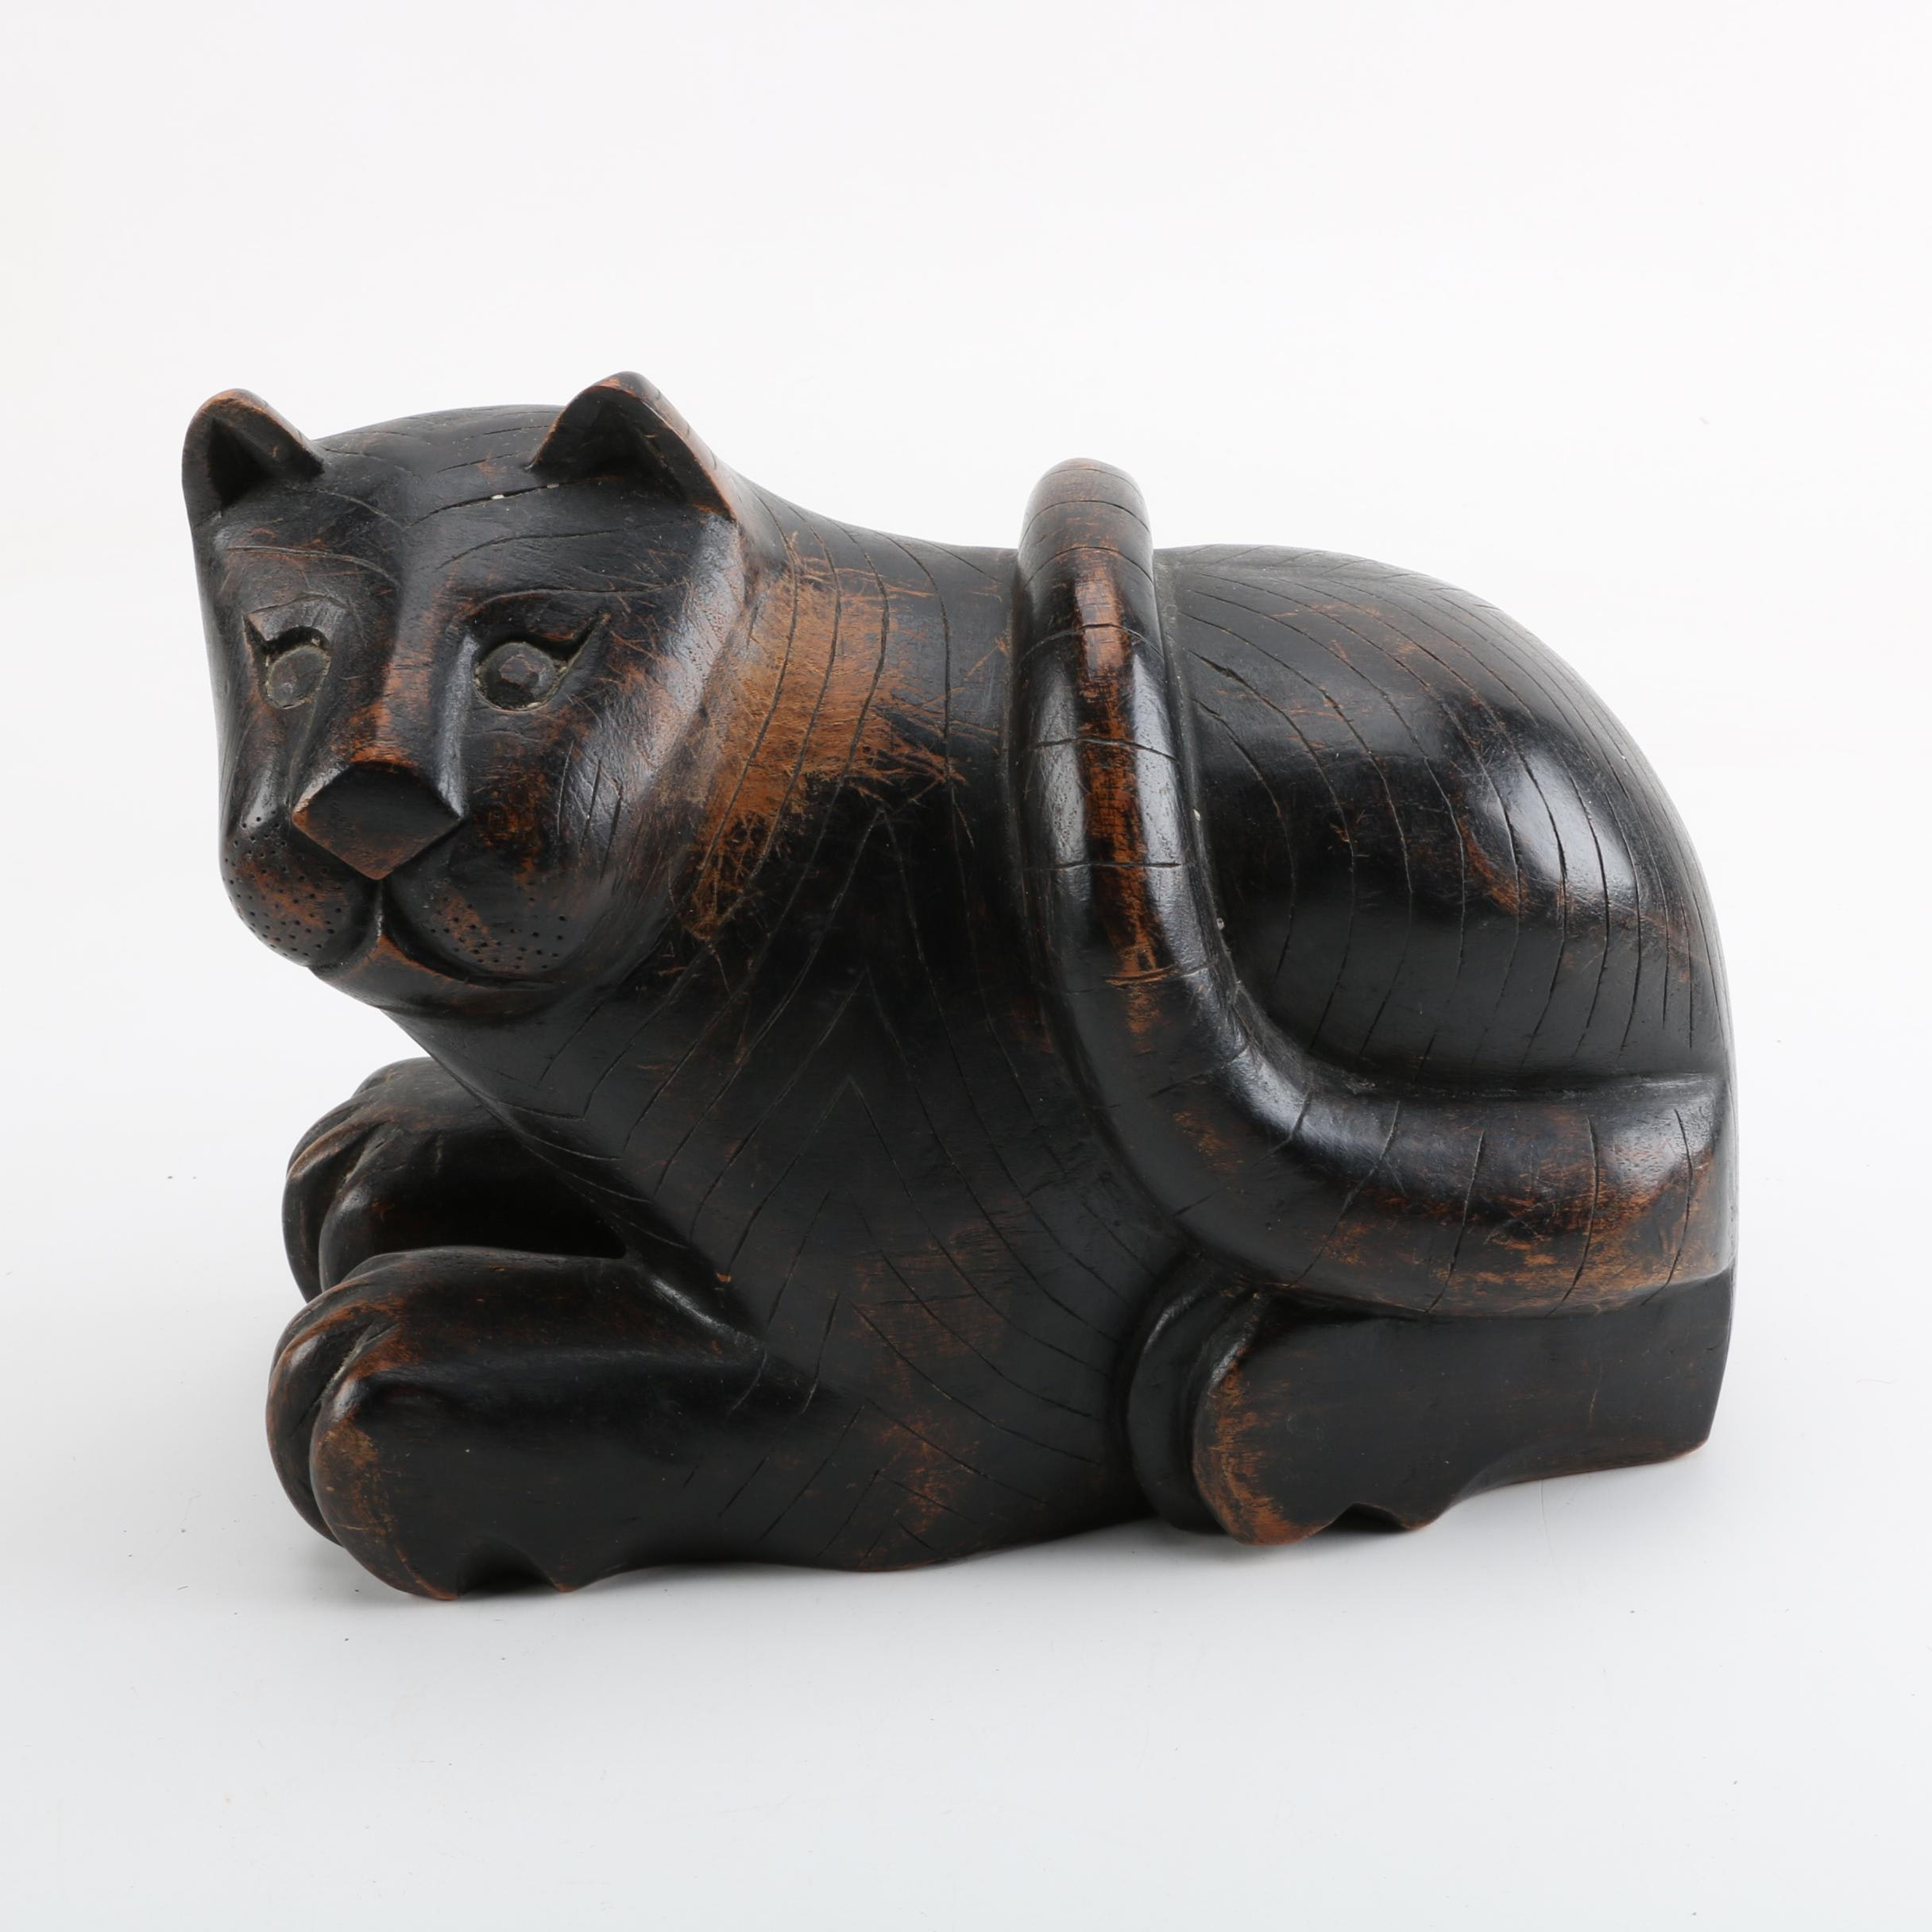 Vintage Painted Wood Figure of a Cat